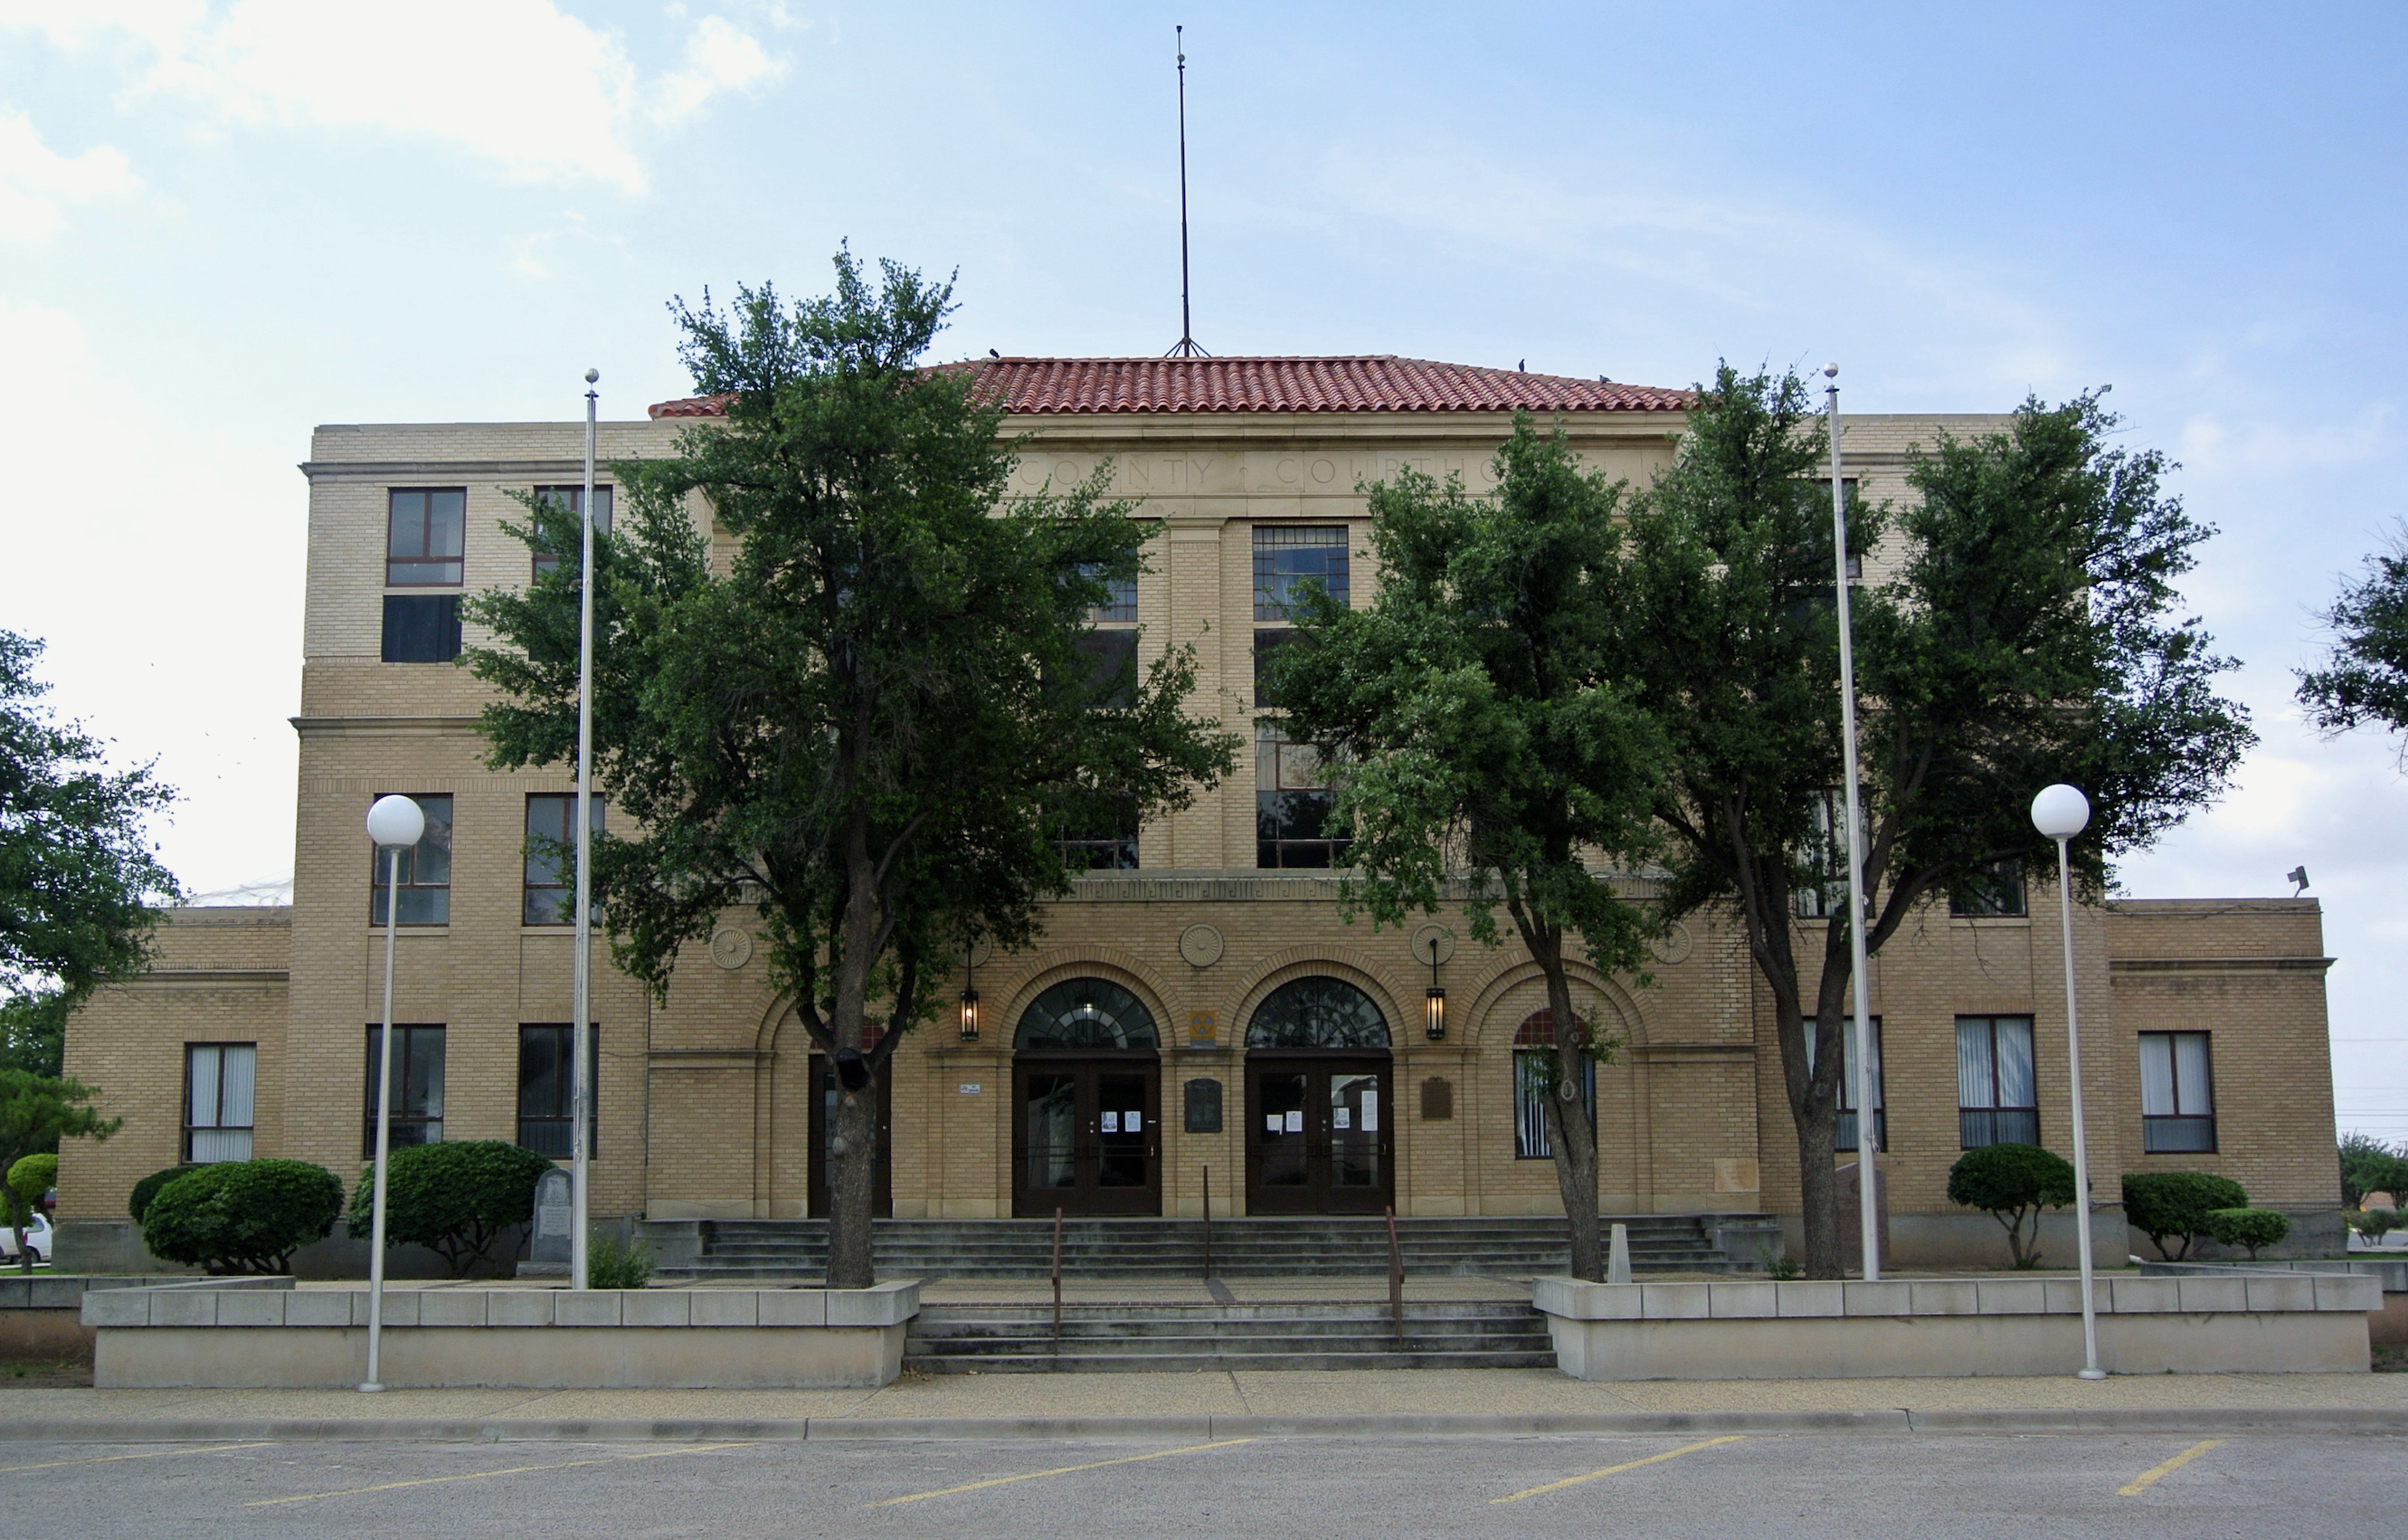 Reeves County Courthouse, Pecos, Texas